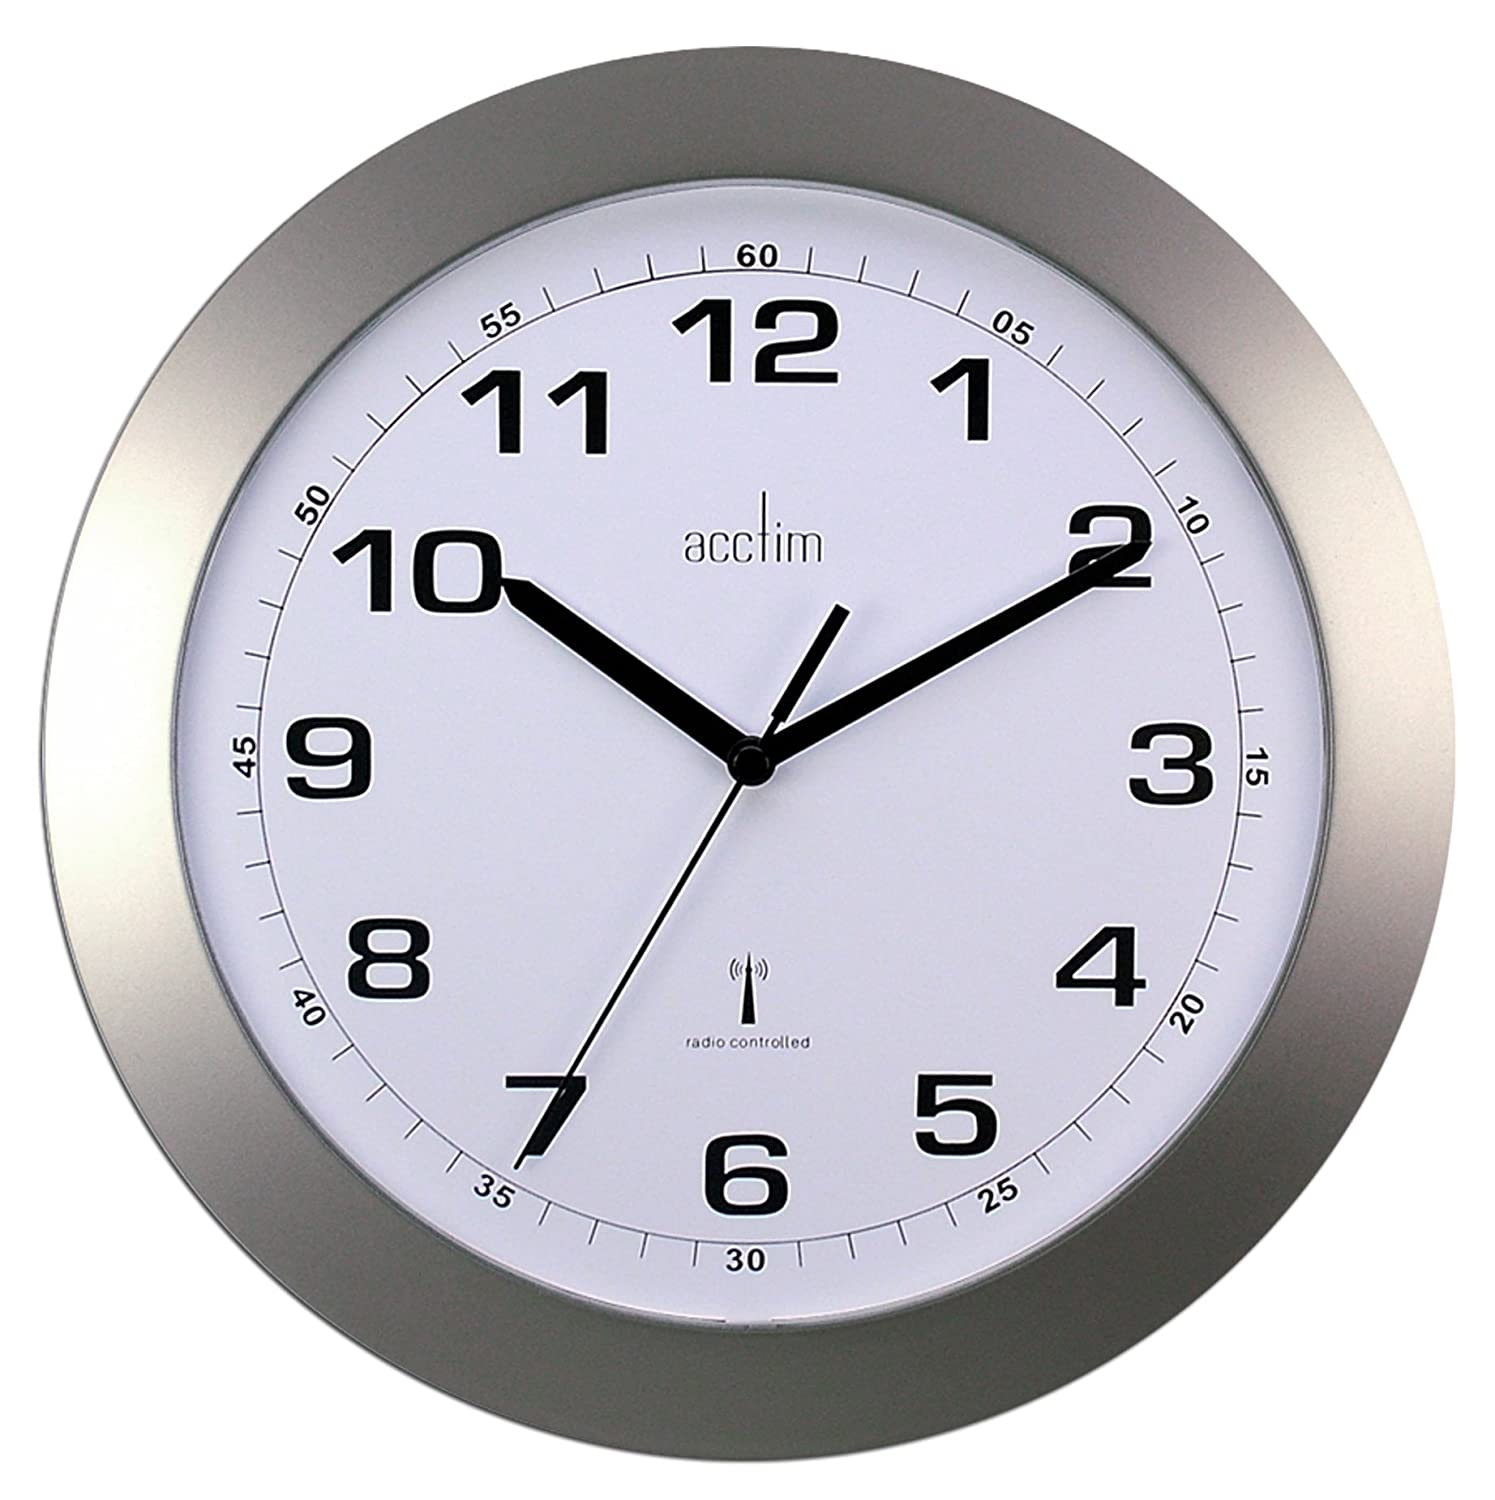 Cadiz silver radio controlled wall clock amazon office cadiz silver radio controlled wall clock amazon office products amipublicfo Image collections